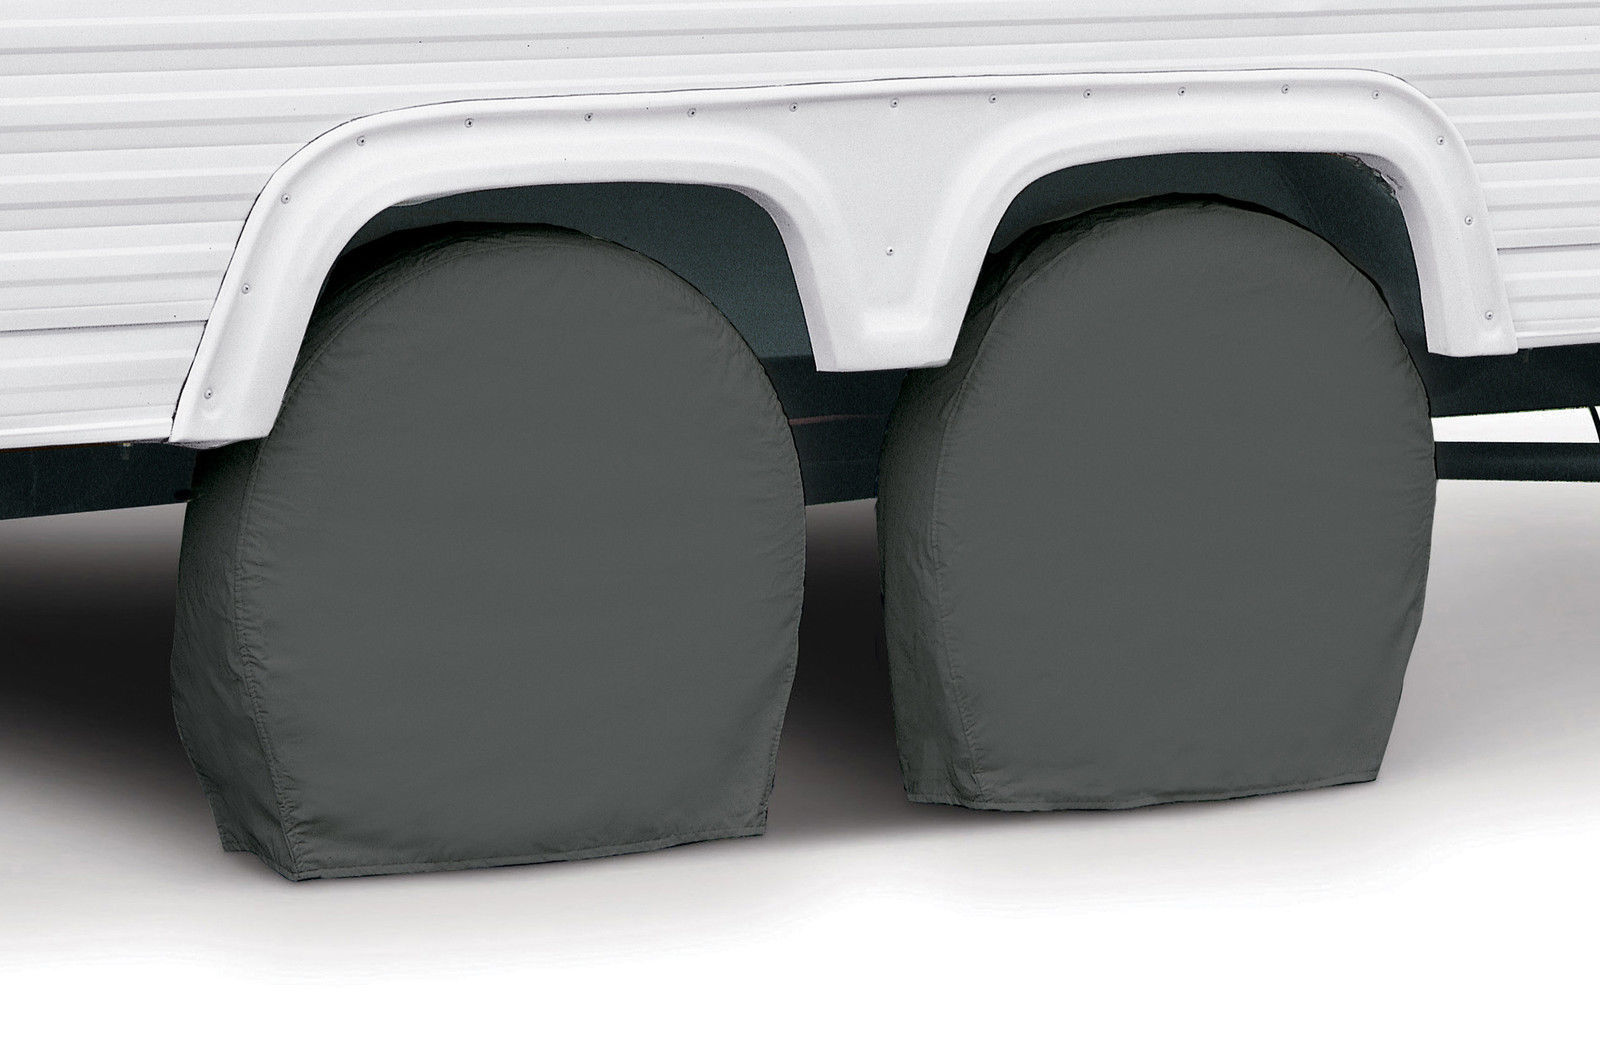 Rv Wheel Covers : How to measure for rv tire covers ebay